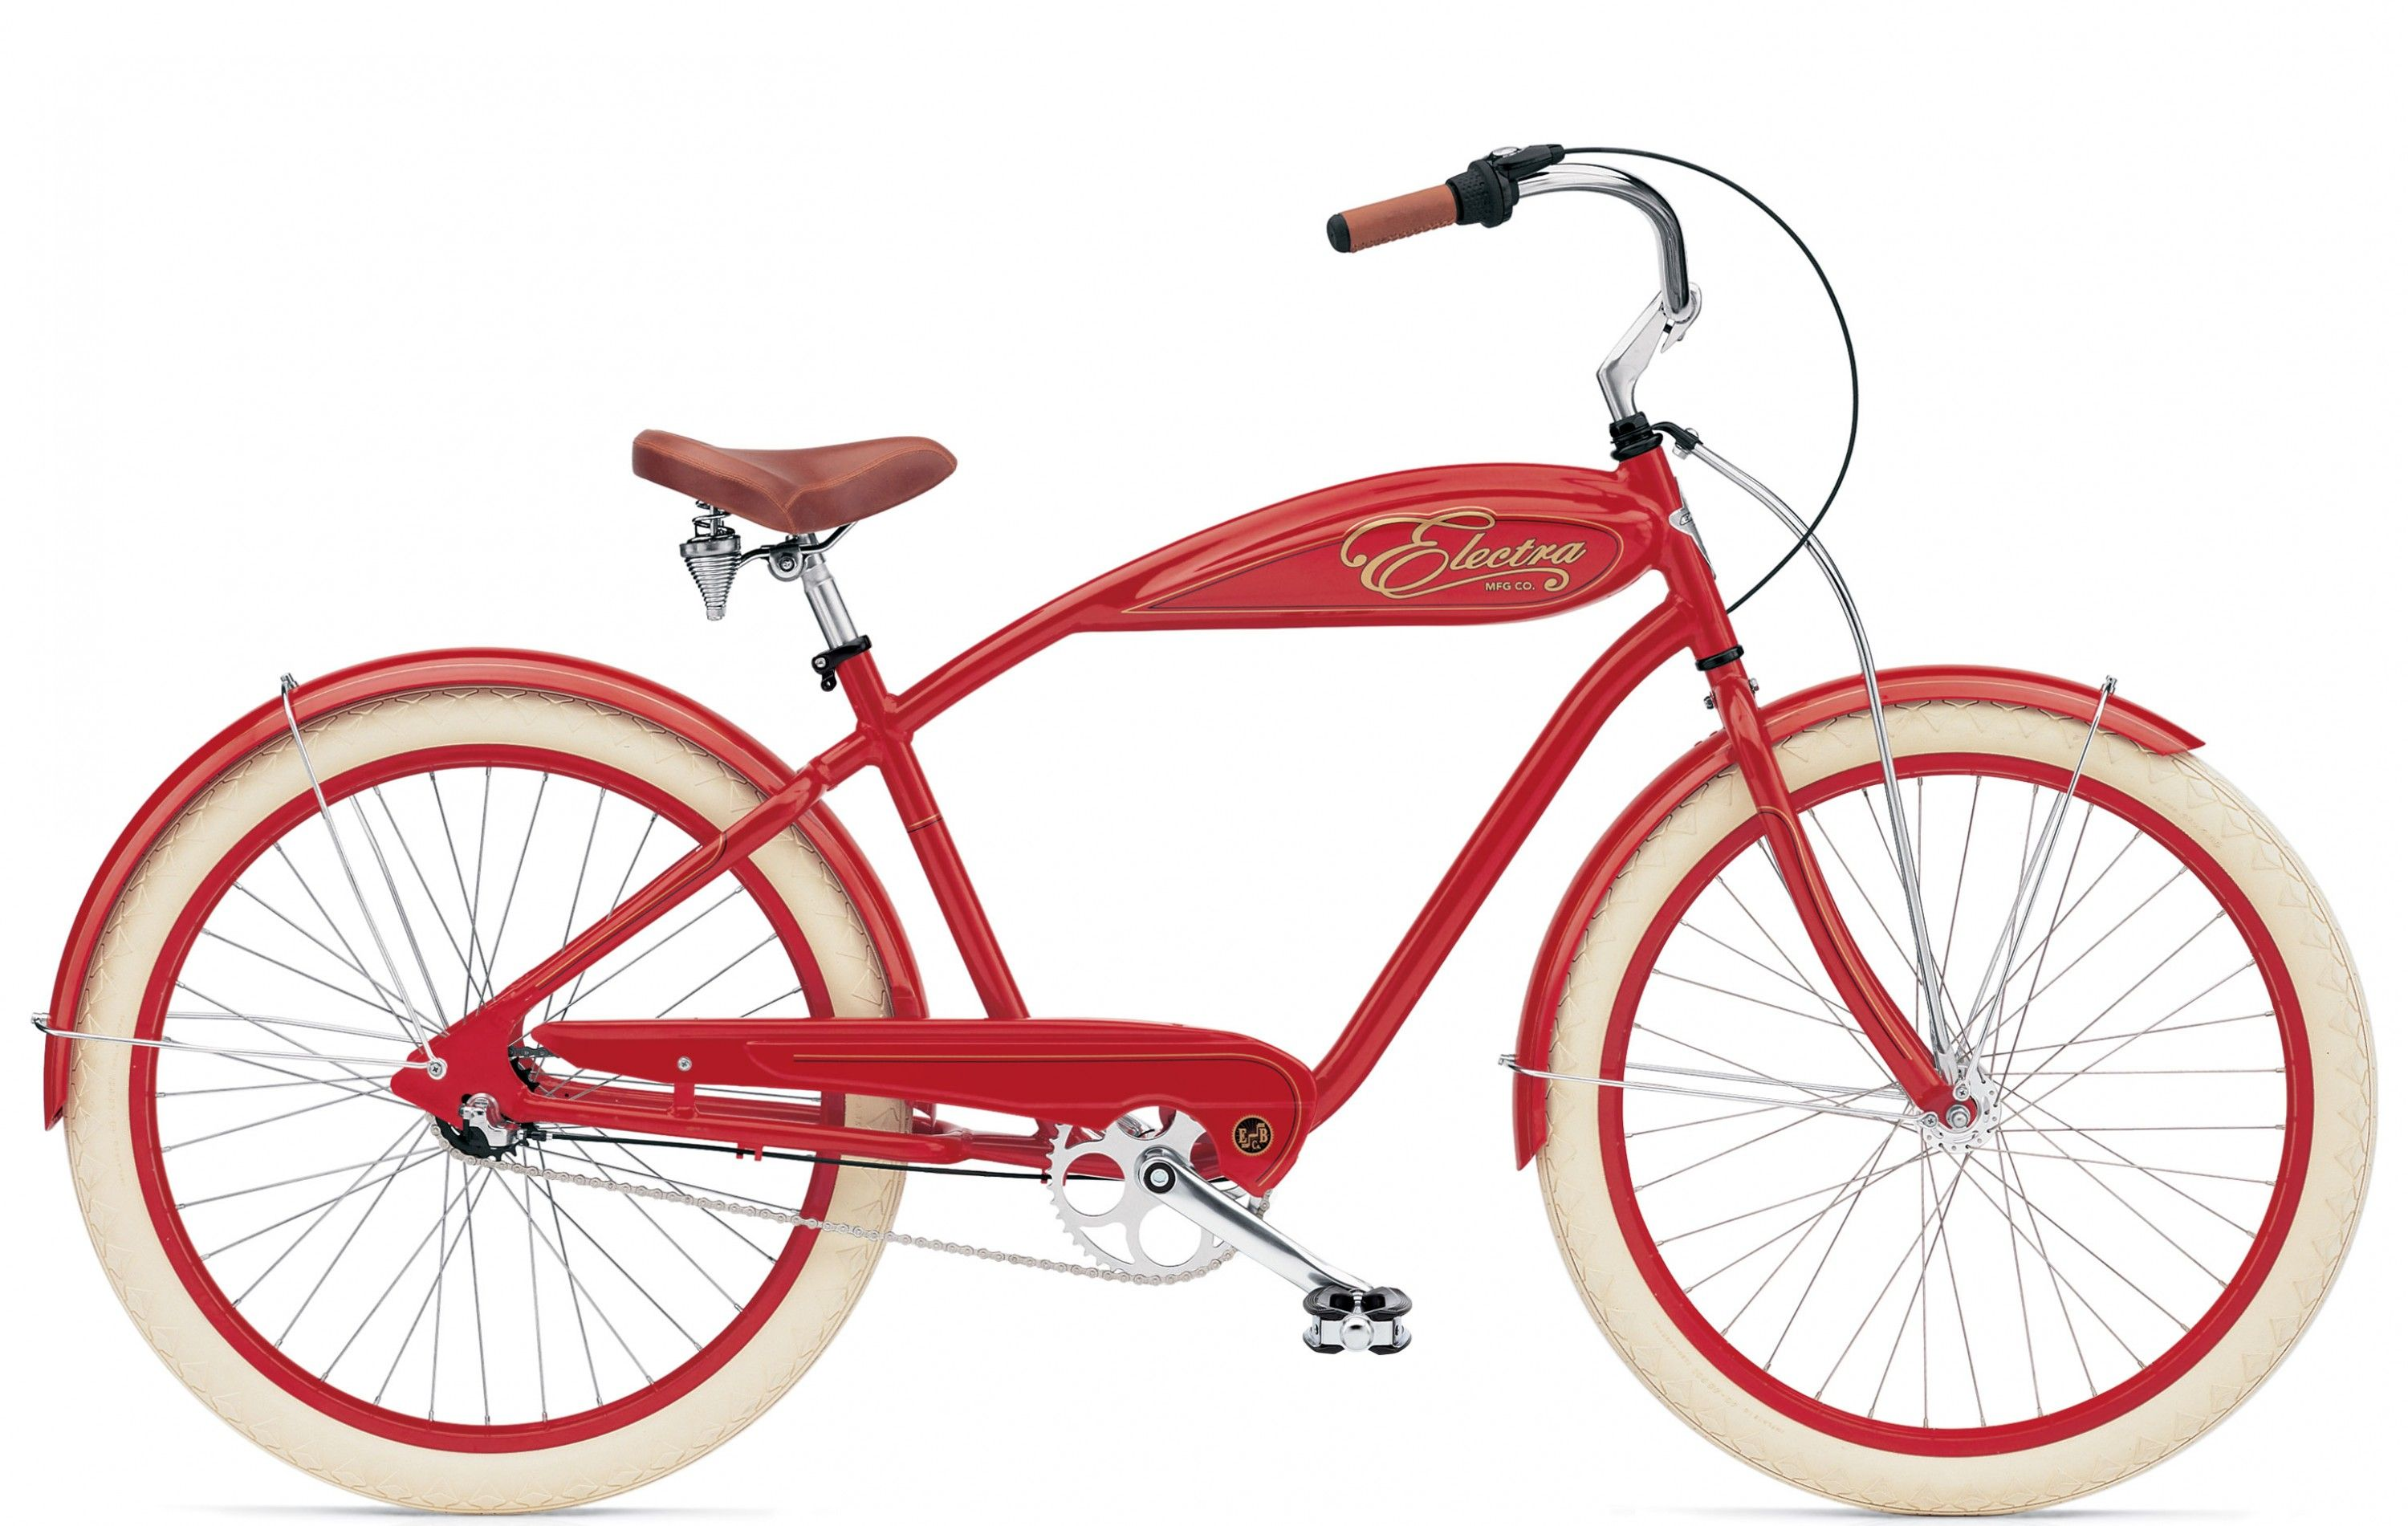 Electra Bicycle Company Bikes Accessories Electra Bikes Electra Bike Beach Cruiser Bicycle